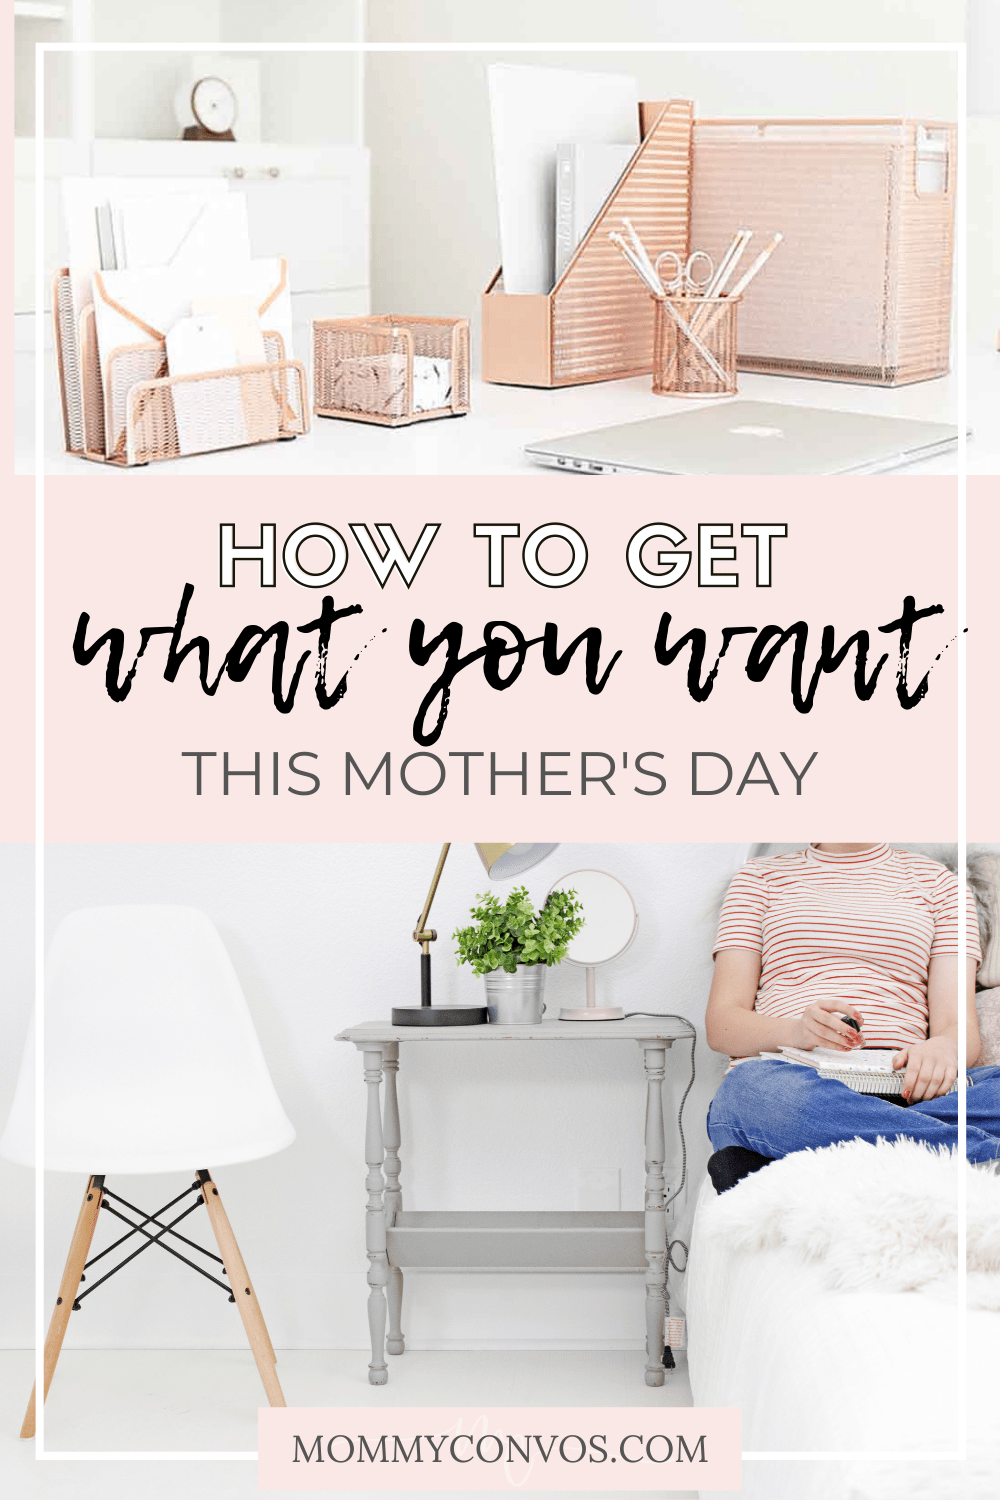 mothers day tips. mega-list of ideas for mothers day gifts for your mom and a few ways to make the day great for yourself! mothers day gift ideas for 2018. mothers day traditions.